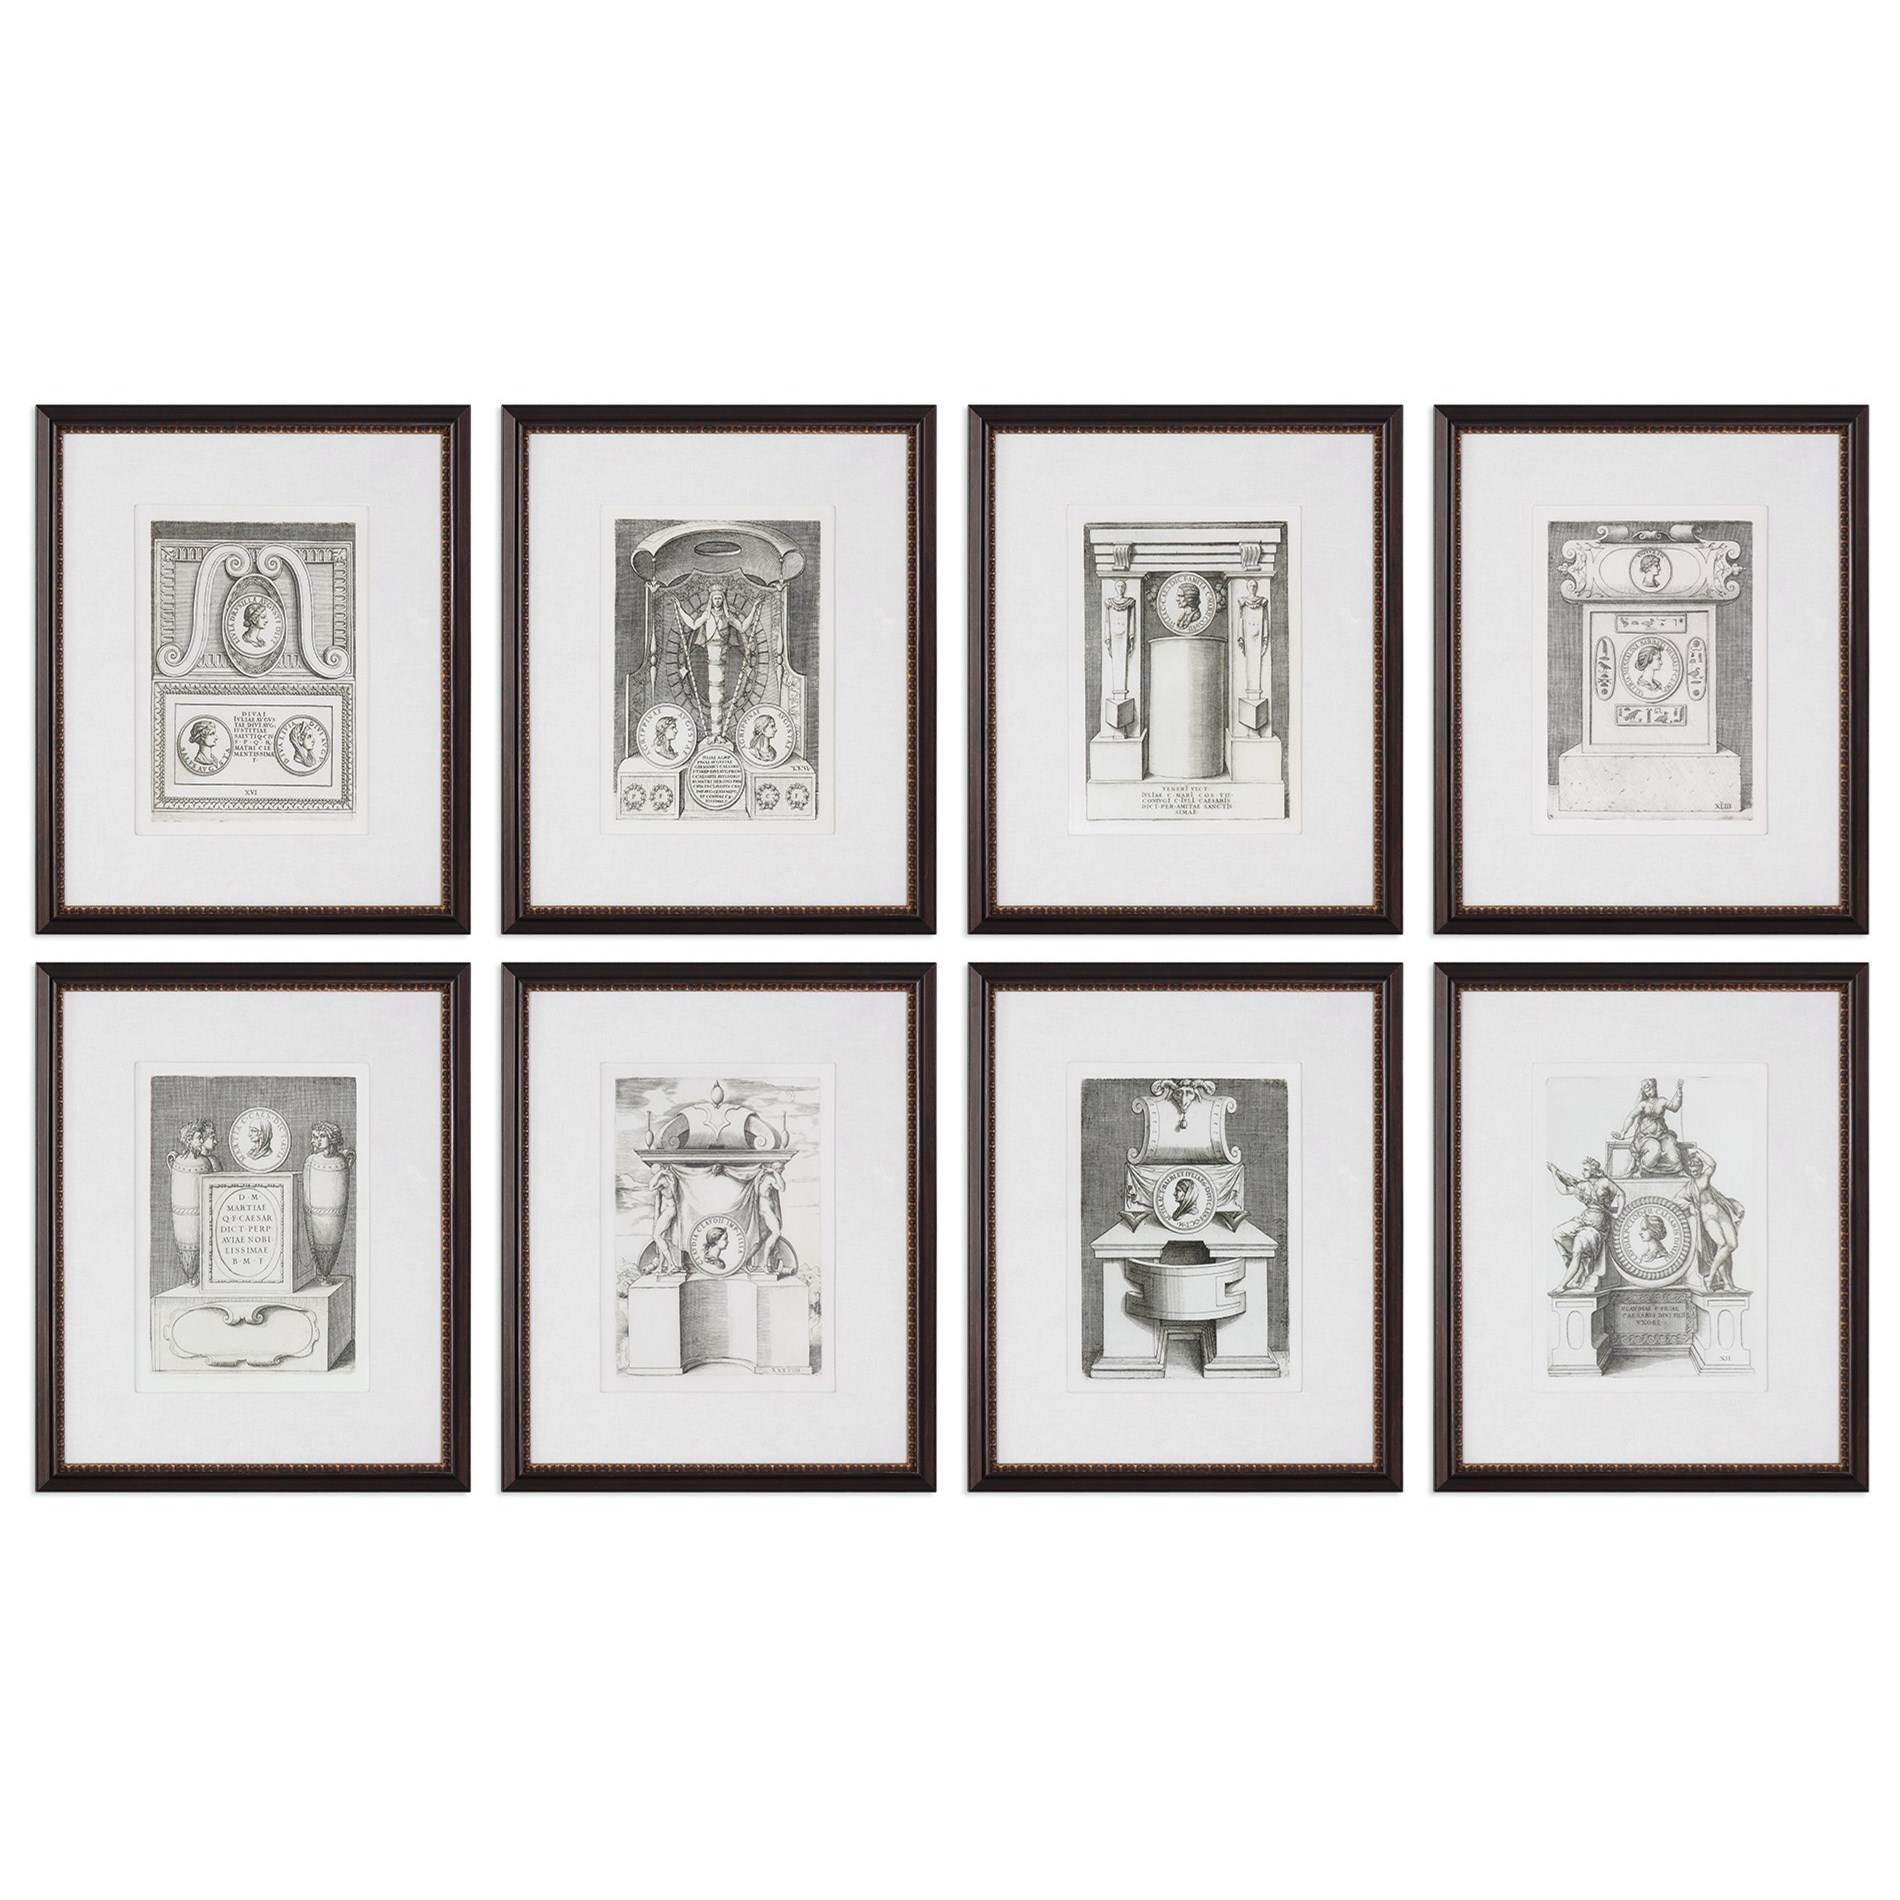 Uttermost Art Monuments (Set of 8) - Item Number: 33652